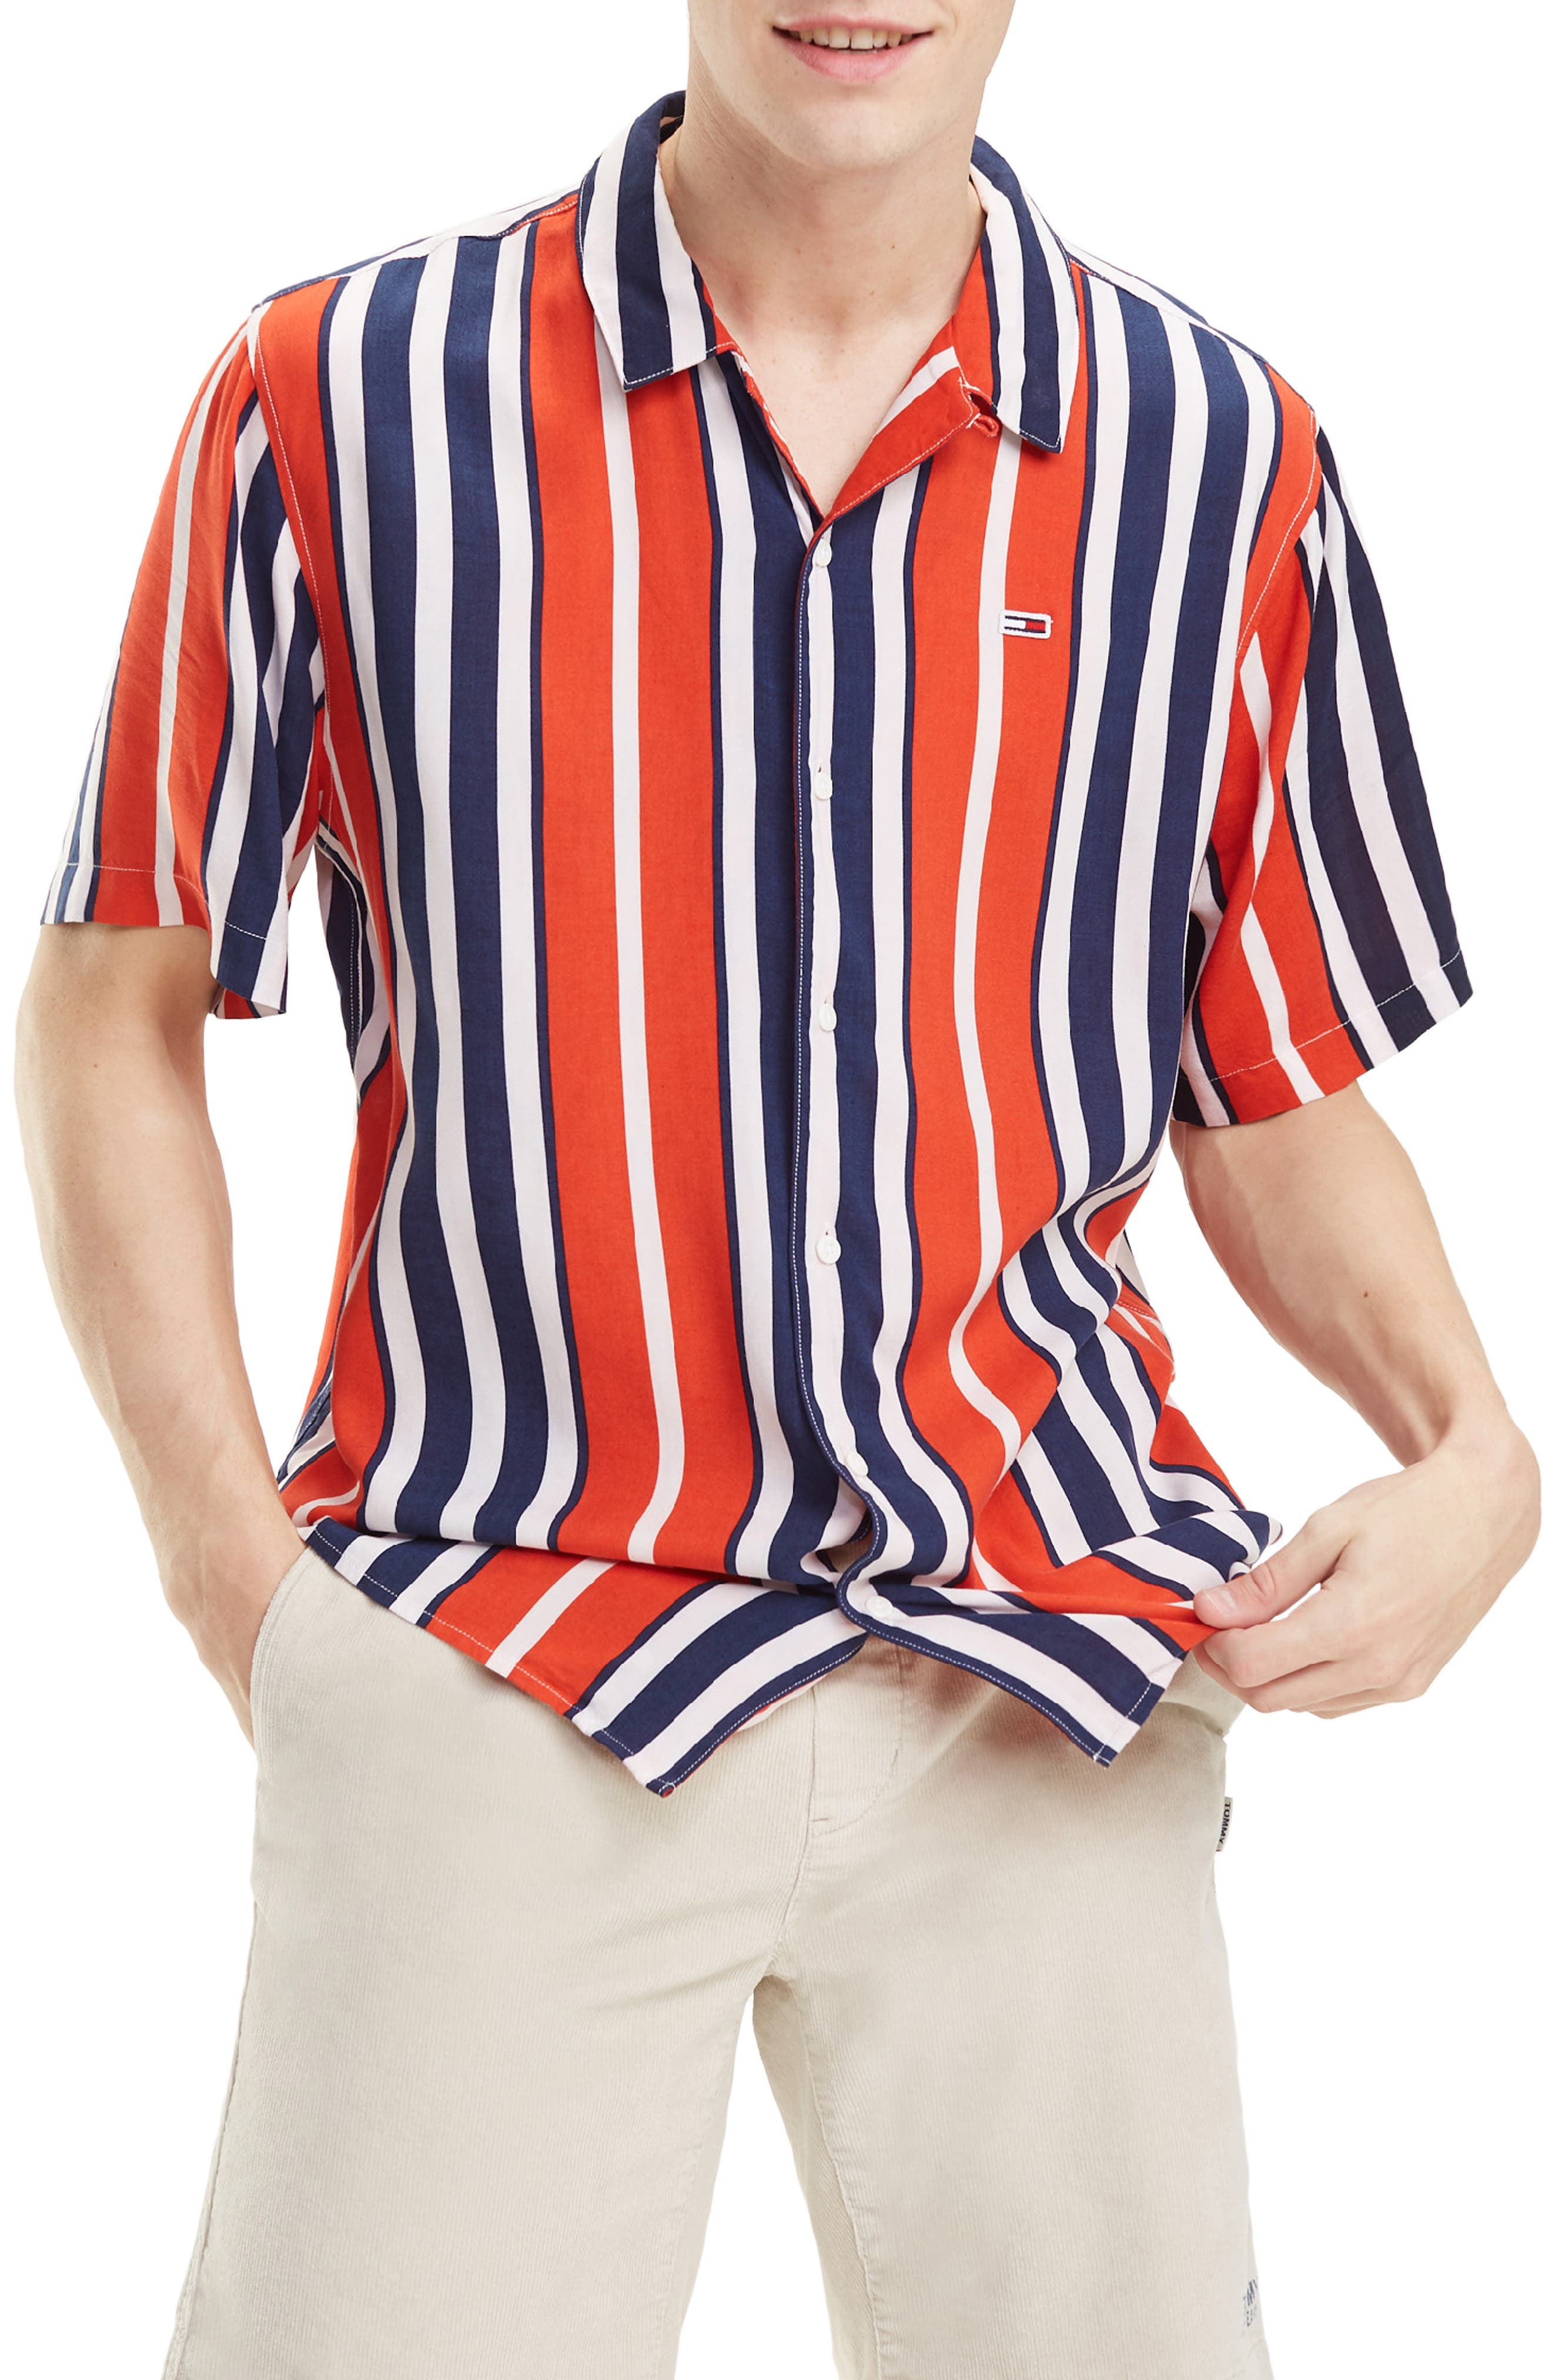 Vintage Shirts – Mens – Retro Shirts Mens Tommy Jeans Relaxed Fit Stripe Camp Shirt $69.50 AT vintagedancer.com